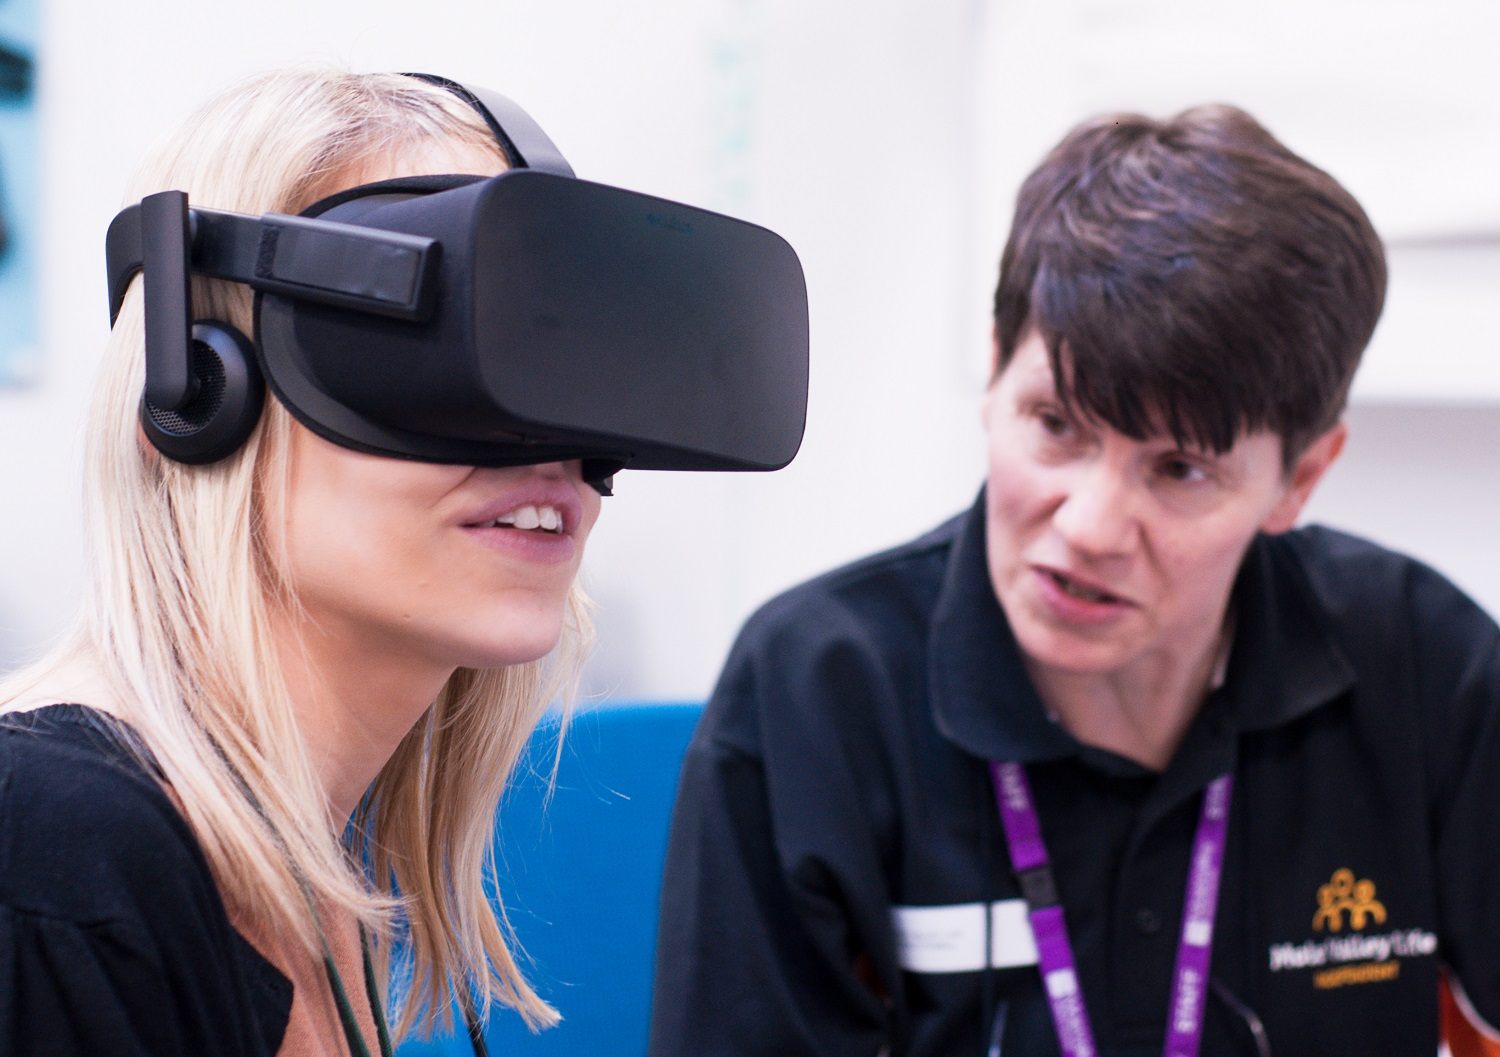 Lady with virtual reality headset on